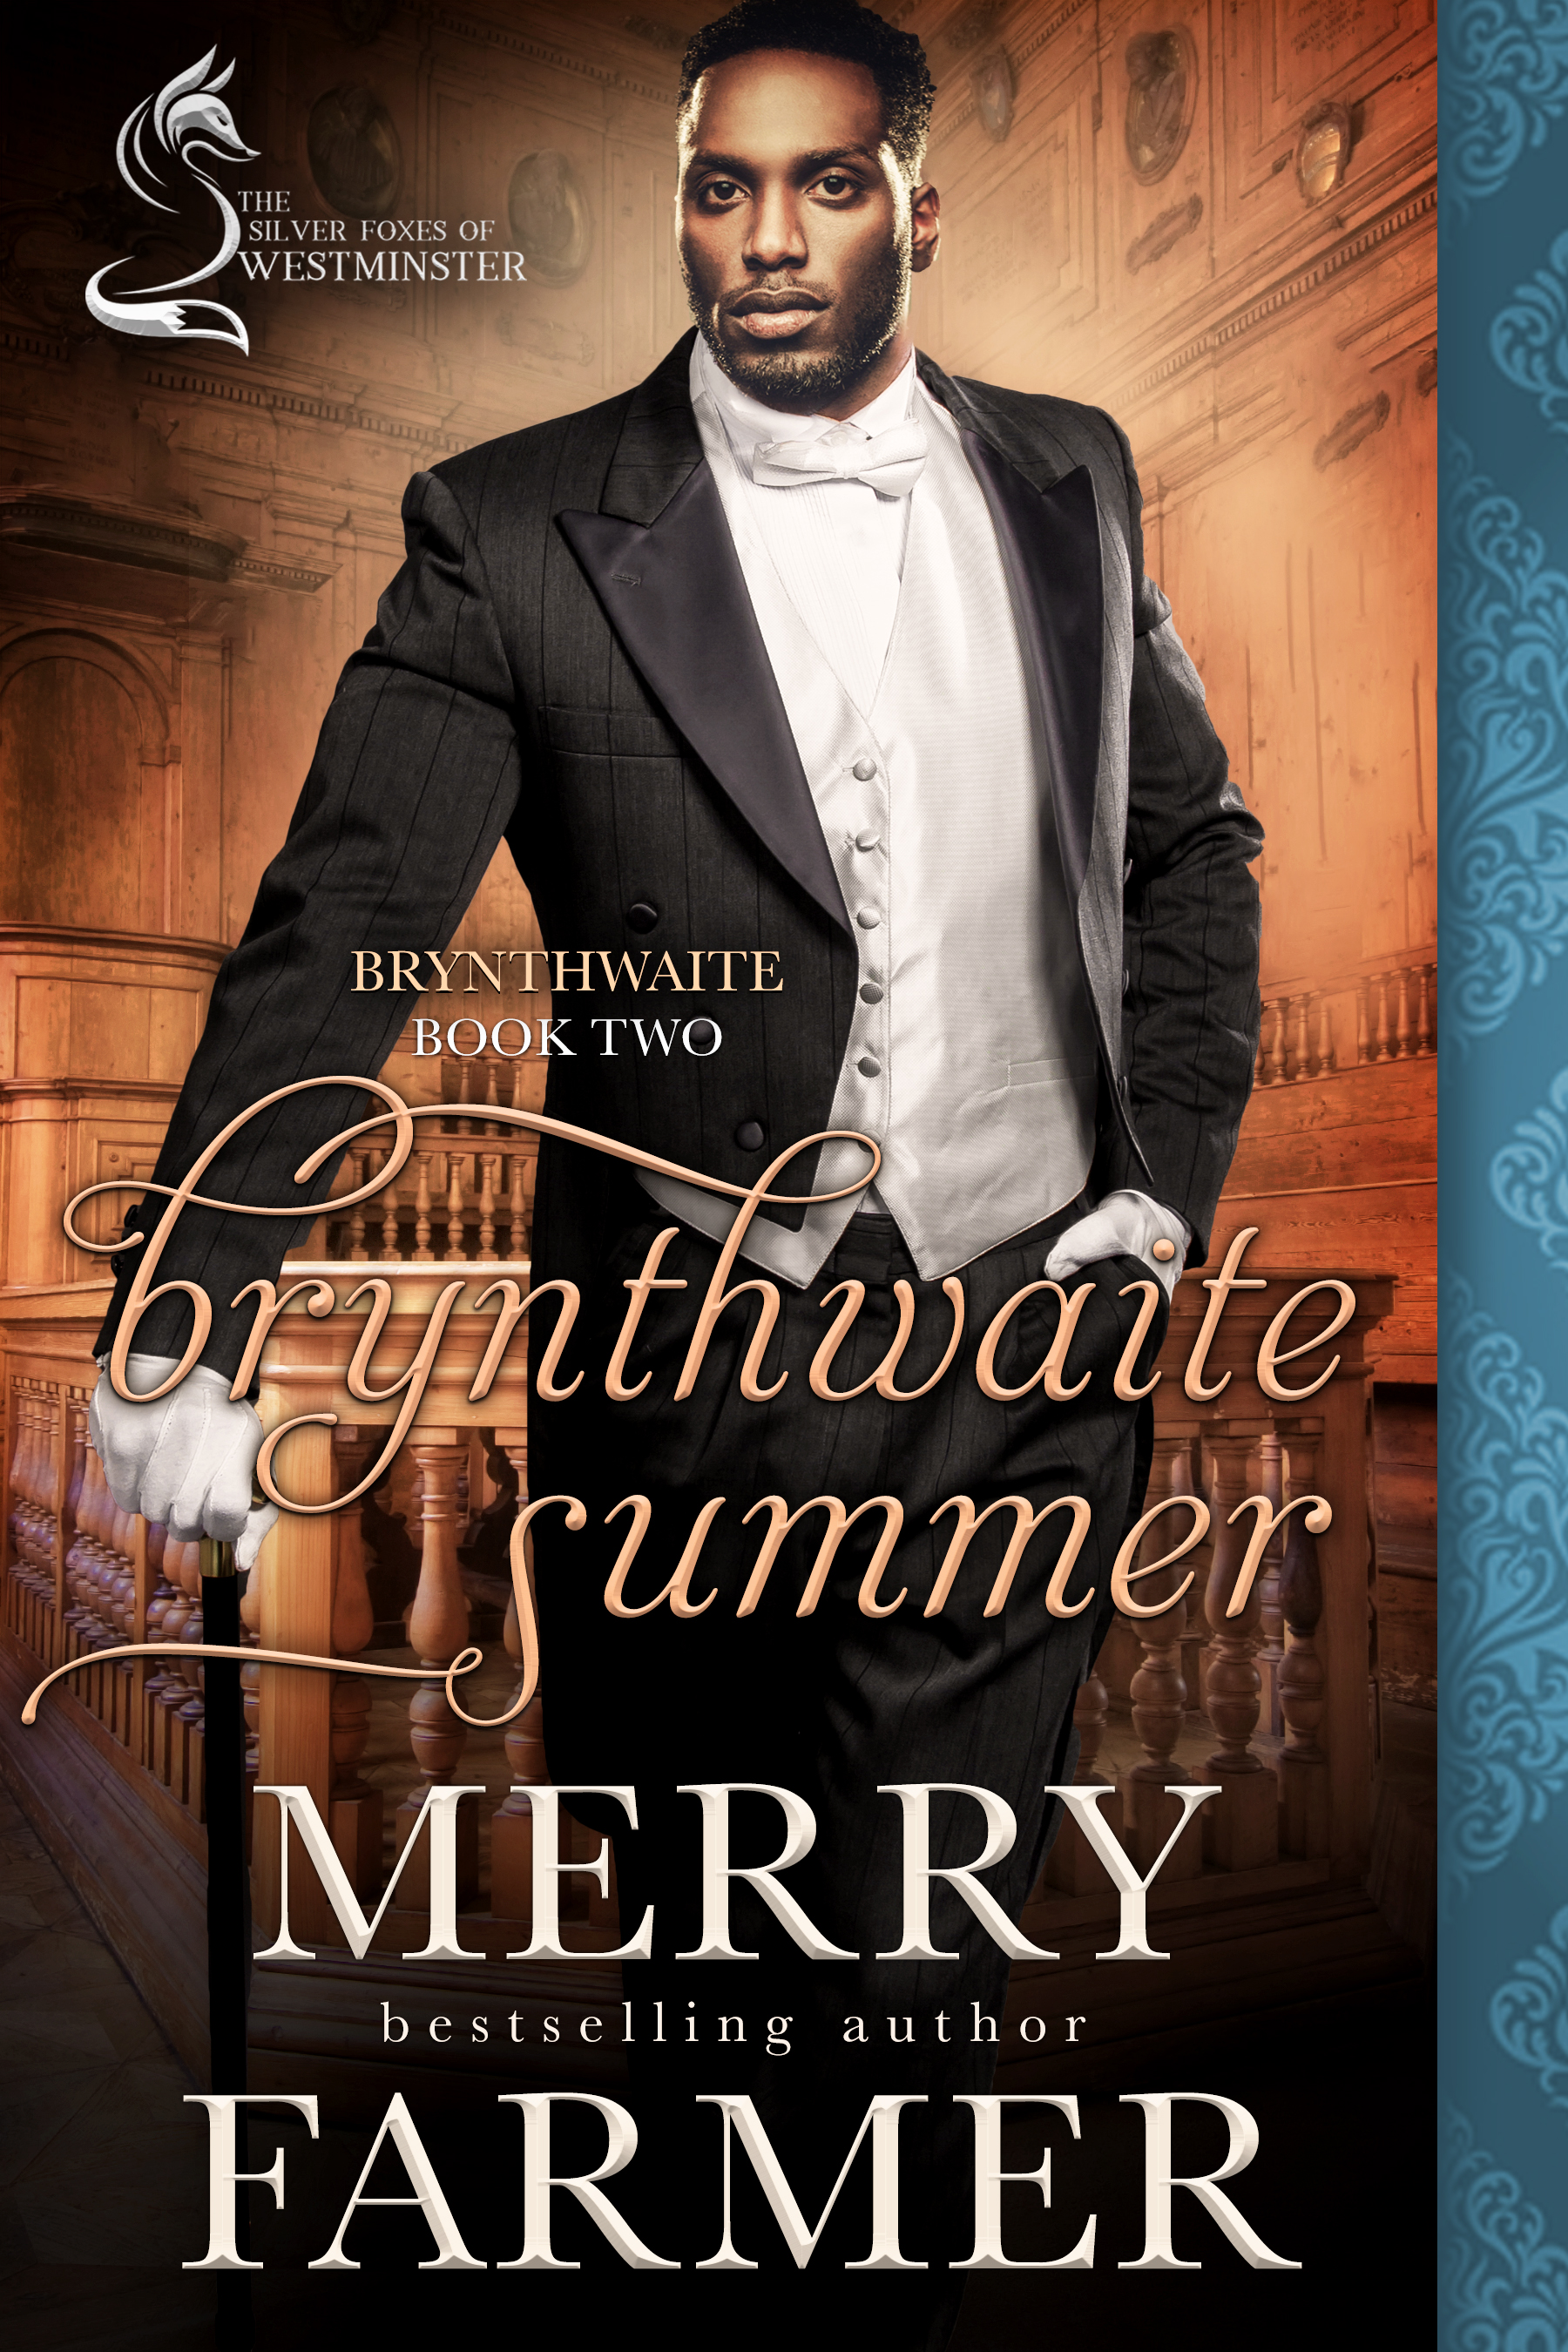 Brynthwaite Summer (Brynthwaite Book Two) - Agatha Crimpley is the happiest woman in the cozy, lakeside town of Brynthwaite. She is liked and respected, her father is all set to entrust her with a great deal of responsibility, and she is in love with the dashing and intelligent Mr. Andrew Noble. But Aggie is about to discover that even in the modern and progressive 1880s, who a woman gives her heart to can have shocking consequences.Andrew Noble might have been born in Africa, but after being raised in England by white parents, he considers himself as much an Englishman as anyone else. But he is not foolish enough to think that falling in love with Aggie will be easy, and when a letter arrives from a former colleague of his adopted father's, hinting that his origins might not be what he thinks they are, his life takes a major turn.Can Aggie and Andrew's love survive the shock of a major turn of fortune? Or will a careless indiscretion prove to Aggie that one's reputation is only skin deep?Please Be Advised – Steam Level: HOT